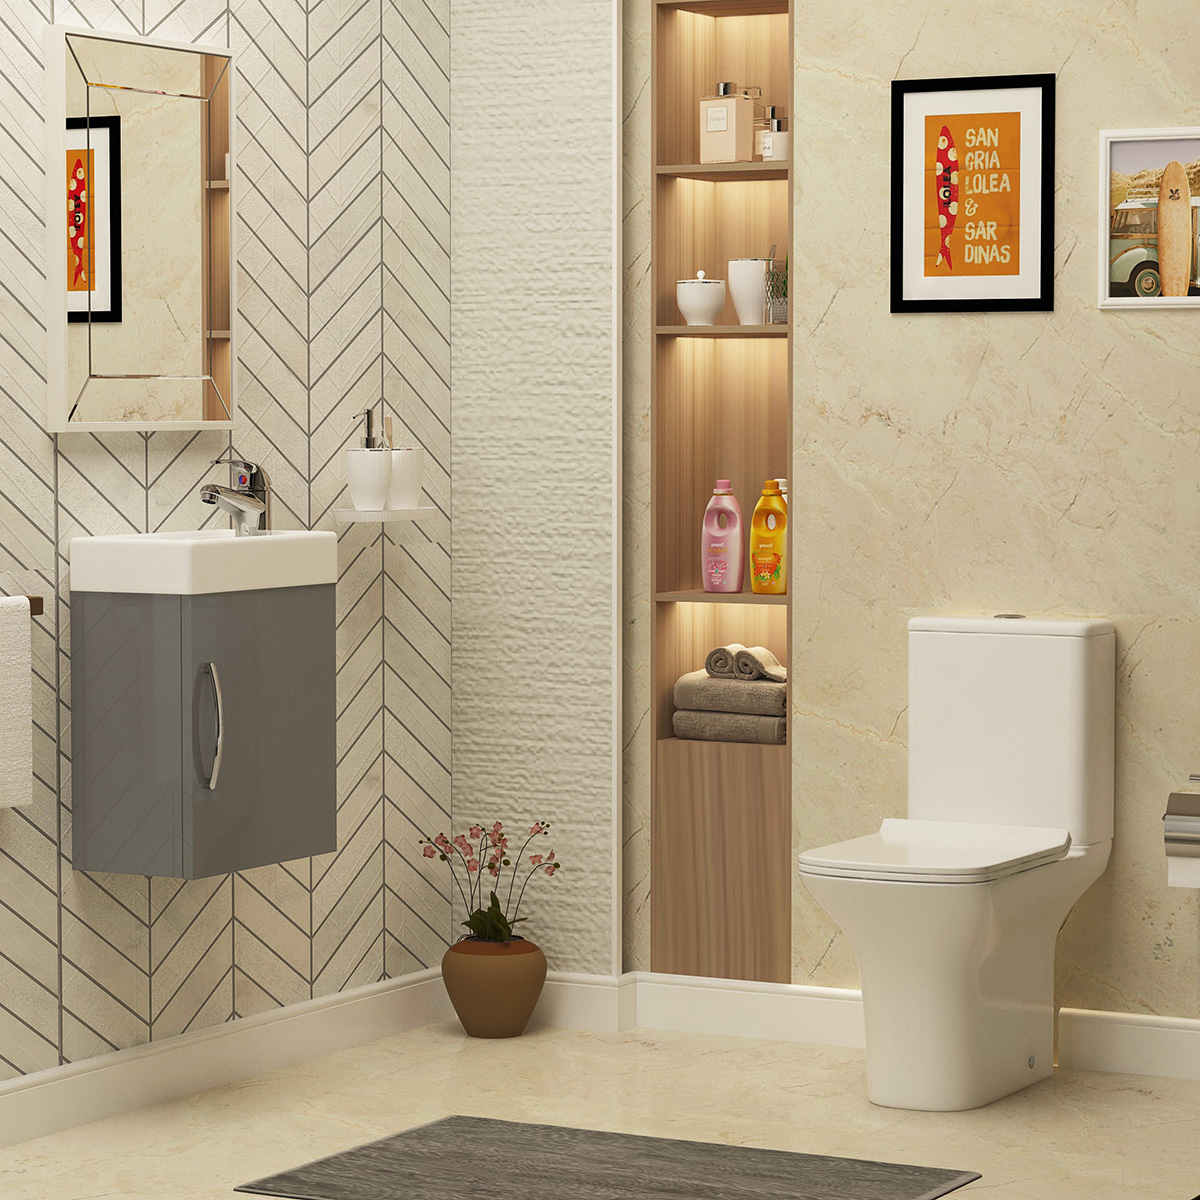 Factors that make a bathroom unhygienic and how these can be fixed?